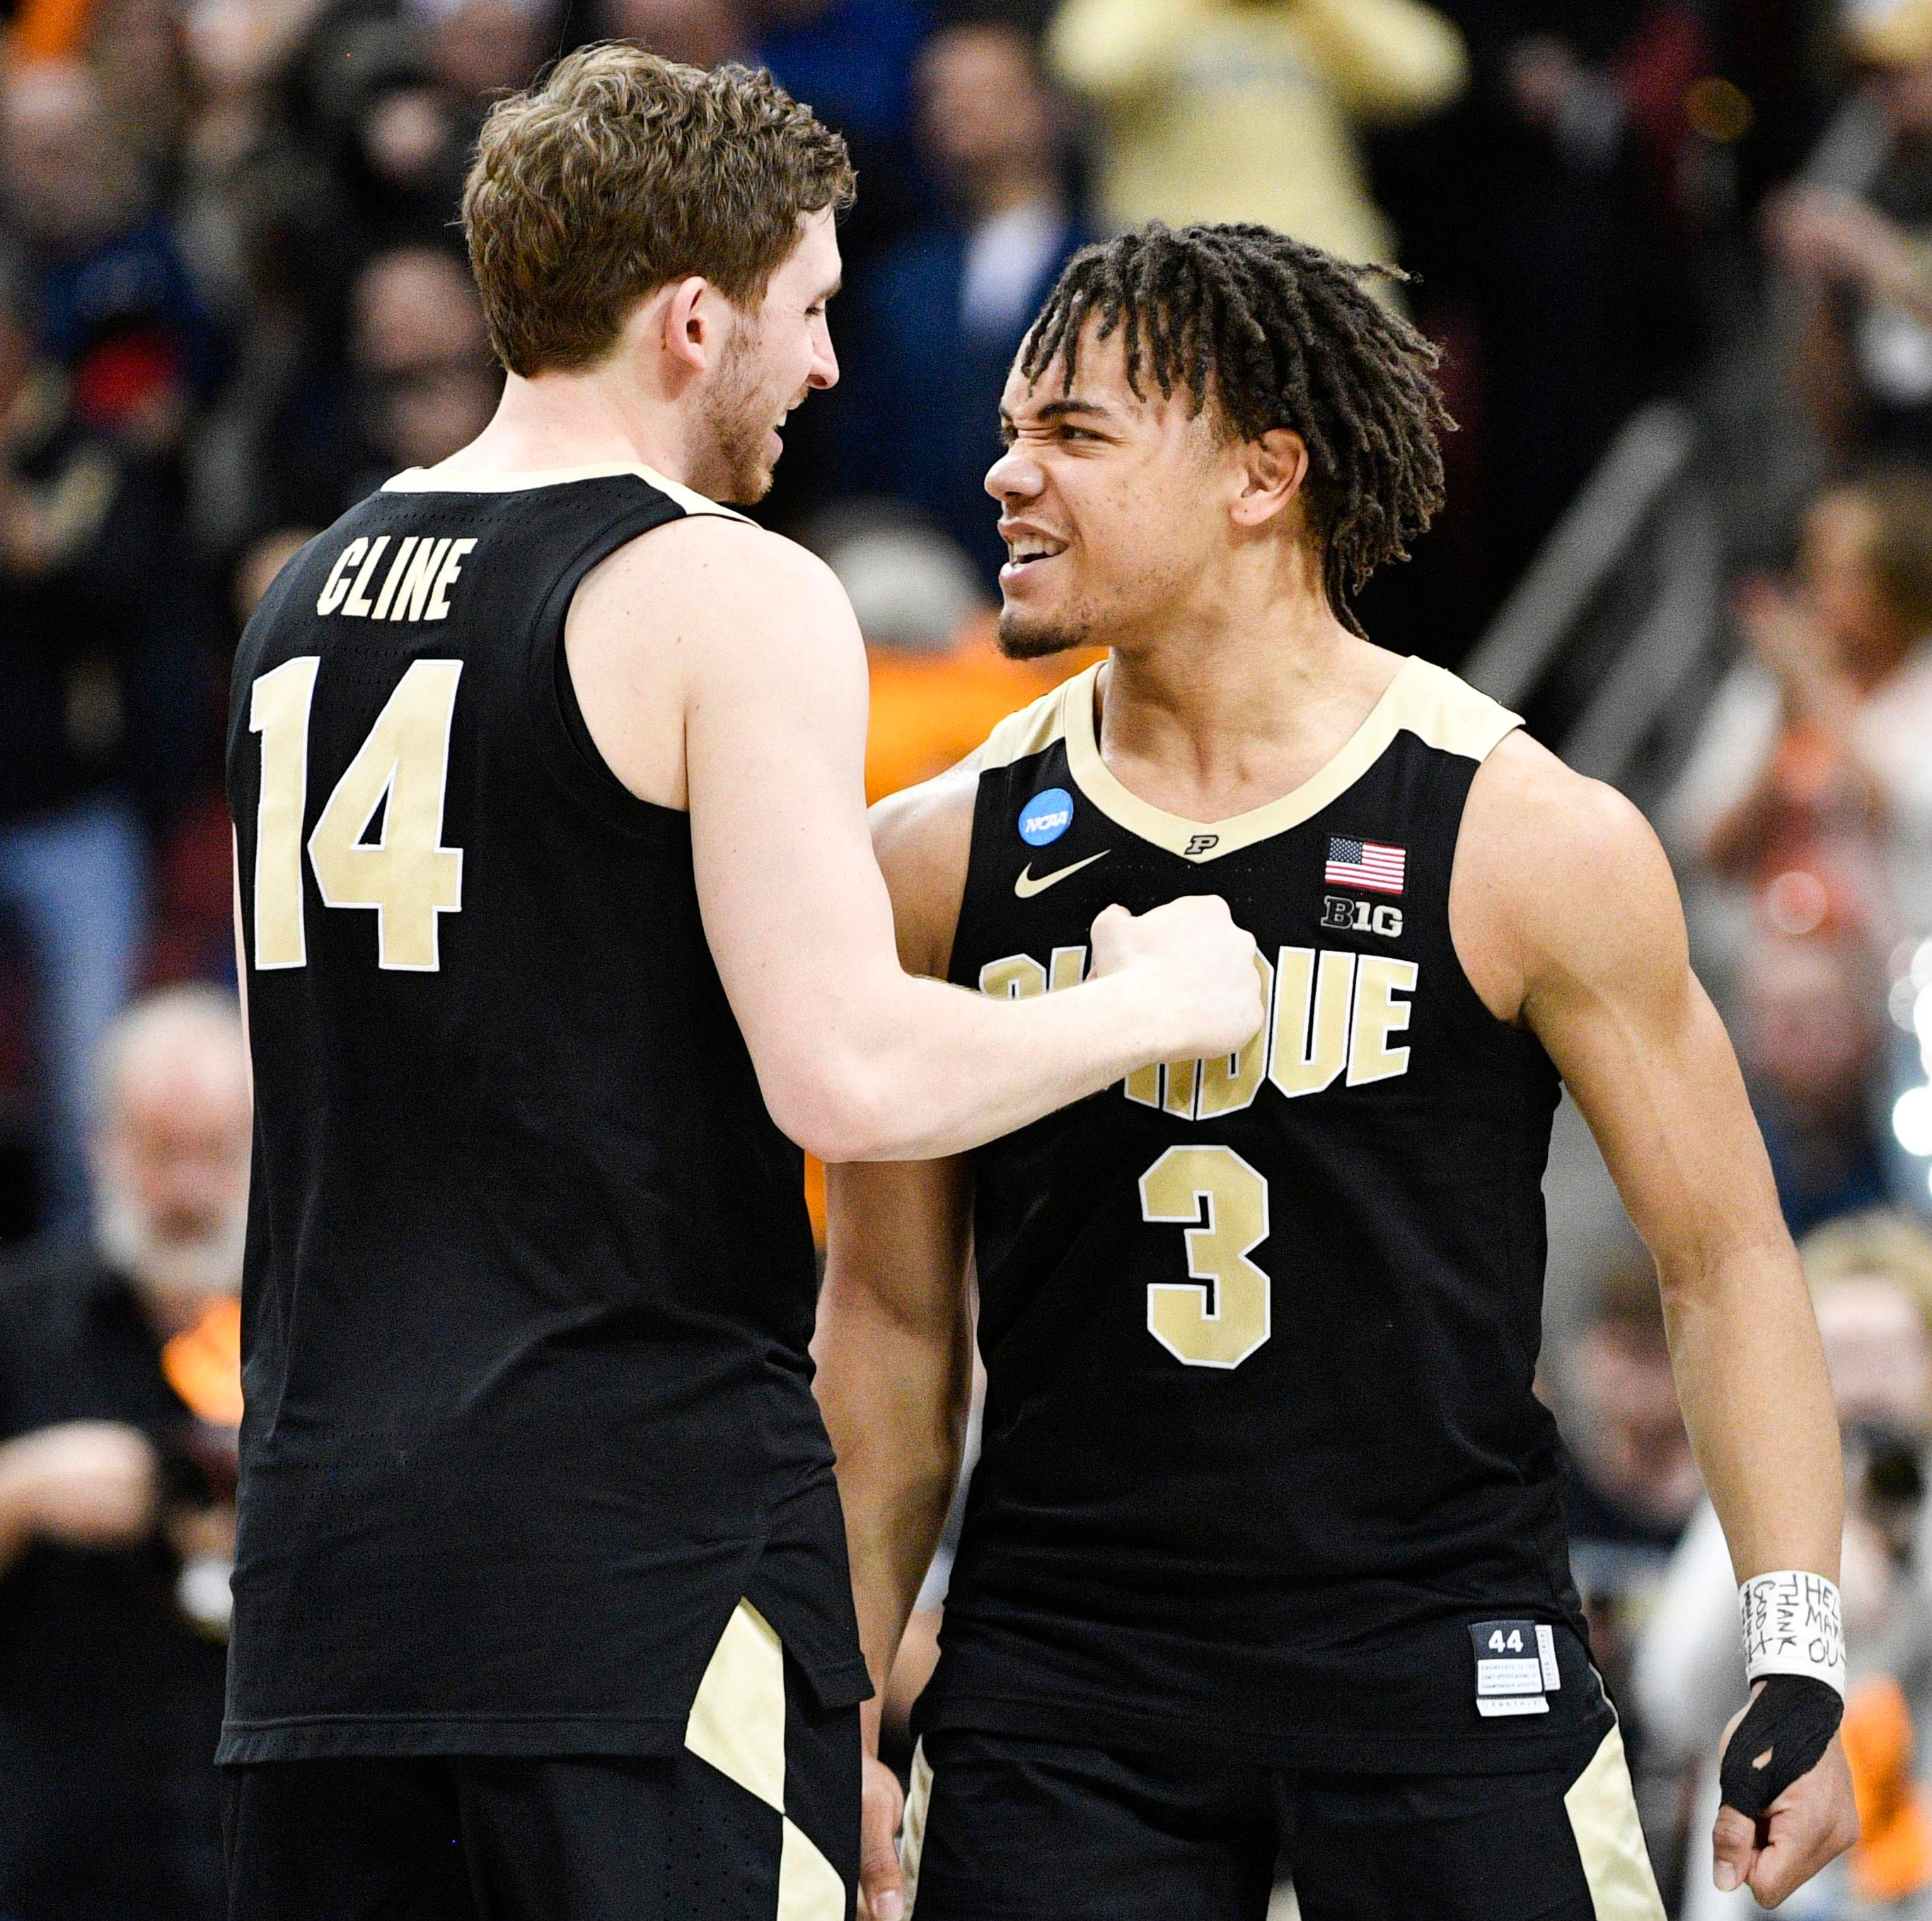 Purdue basketball holds off Tennessee in overtime for first Elite Eight berth since 2000